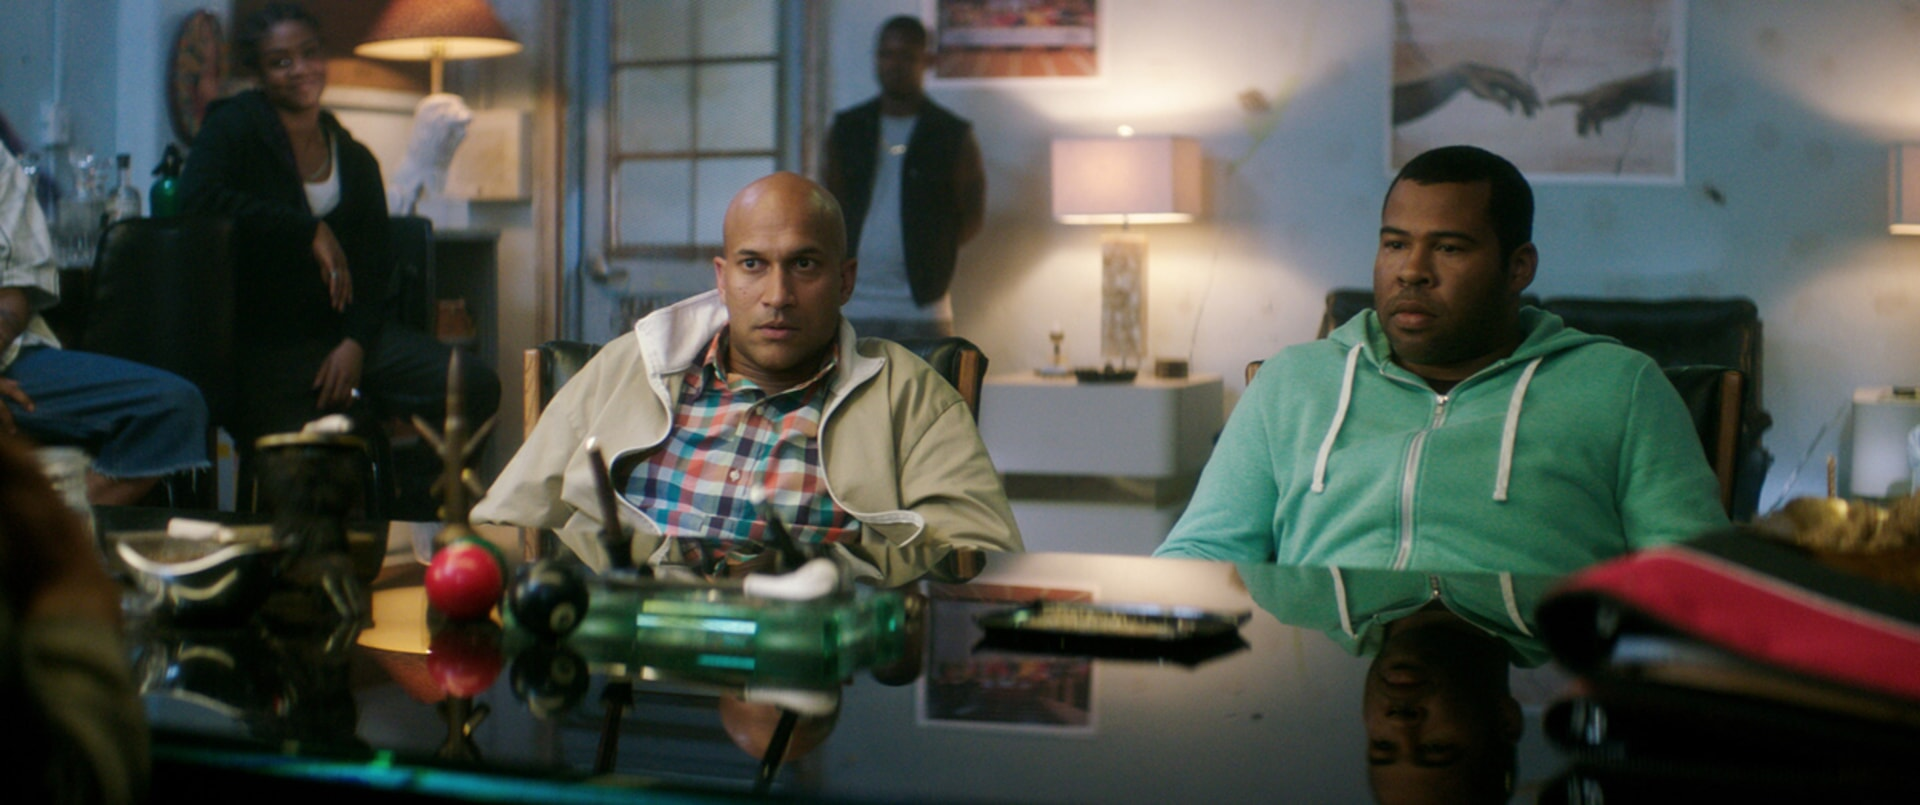 KEEGAN-MICHAEL KEY as Clarence and JORDAN PEELE as Rell sitting a desk surrounded by people